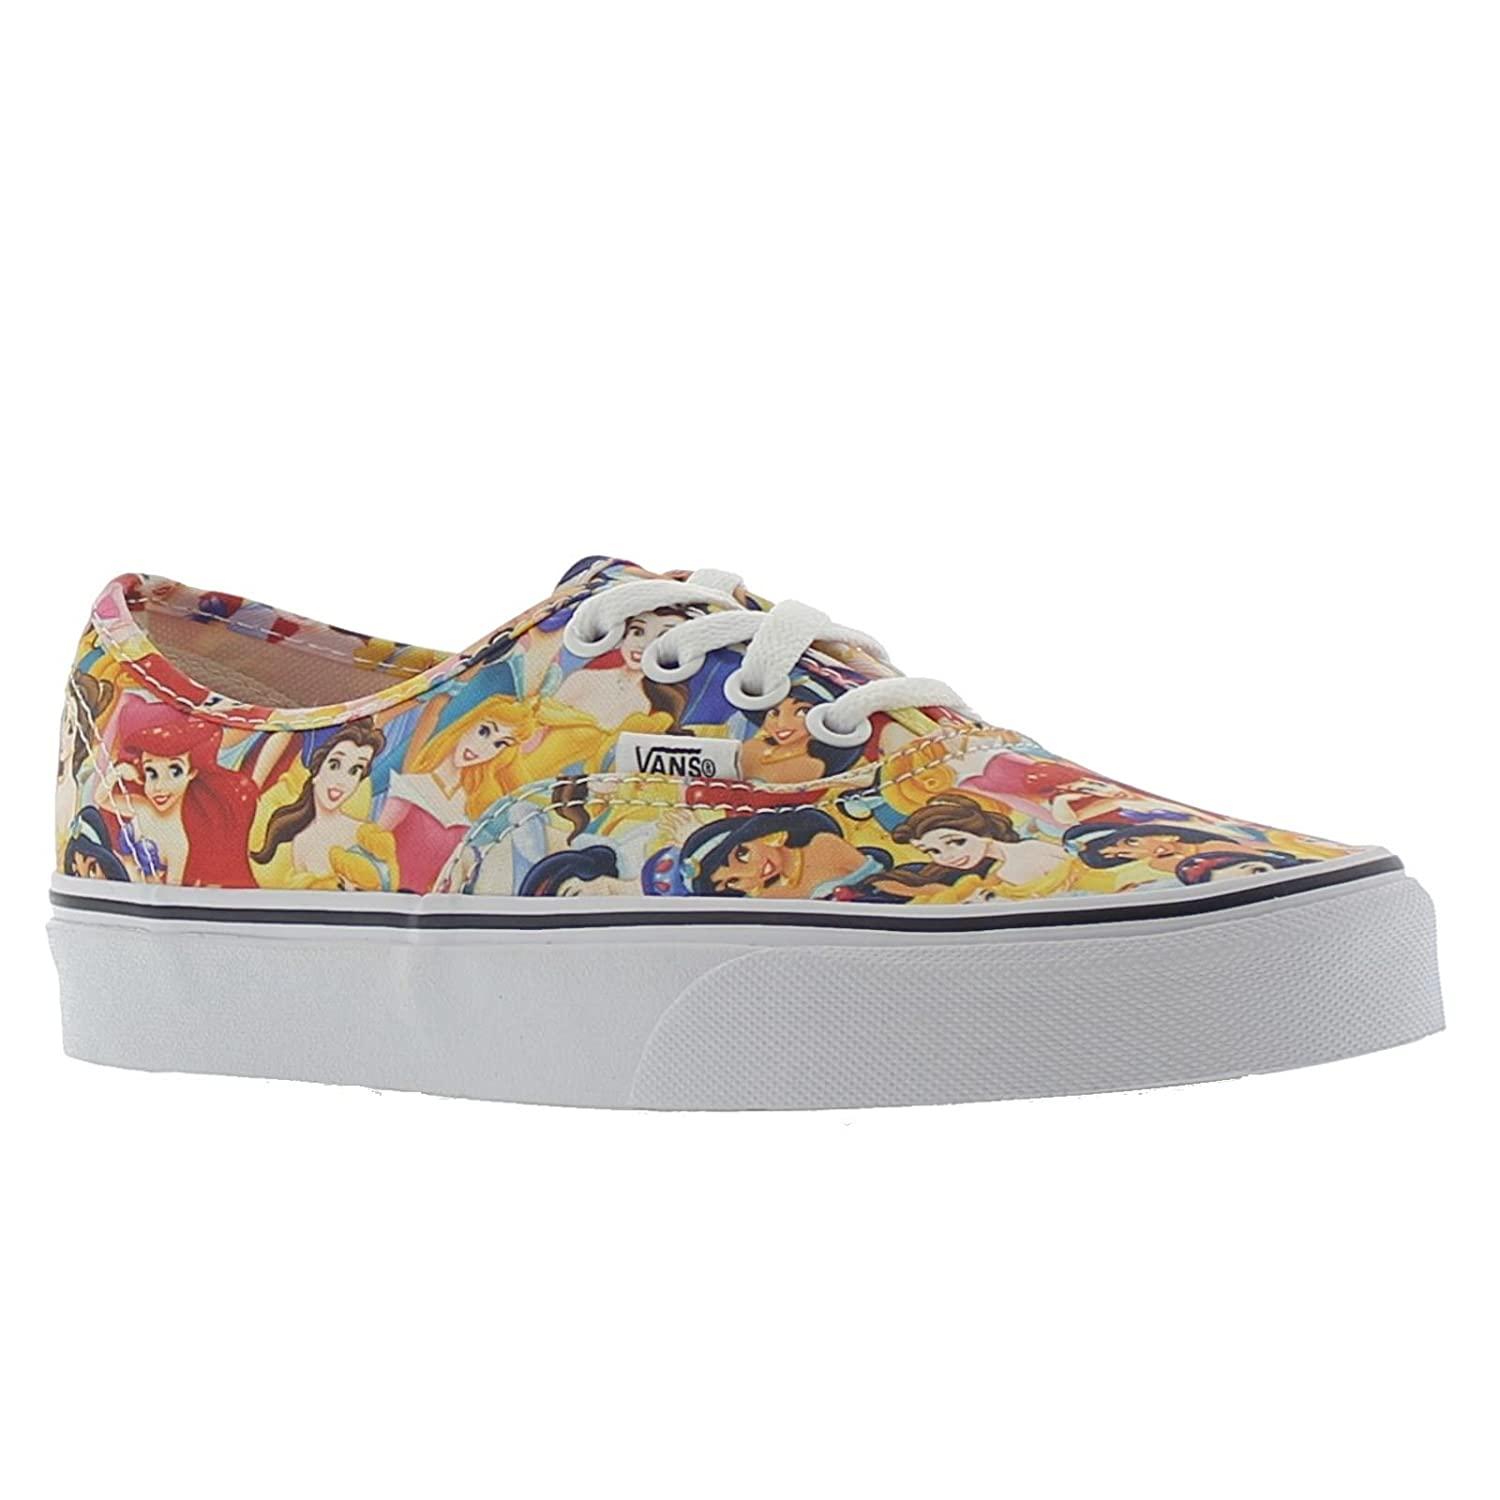 4a7c6f11d40847 Vans Disney Womens Multi Princess Authentic Sneakers  Amazon.ca  Shoes    Handbags